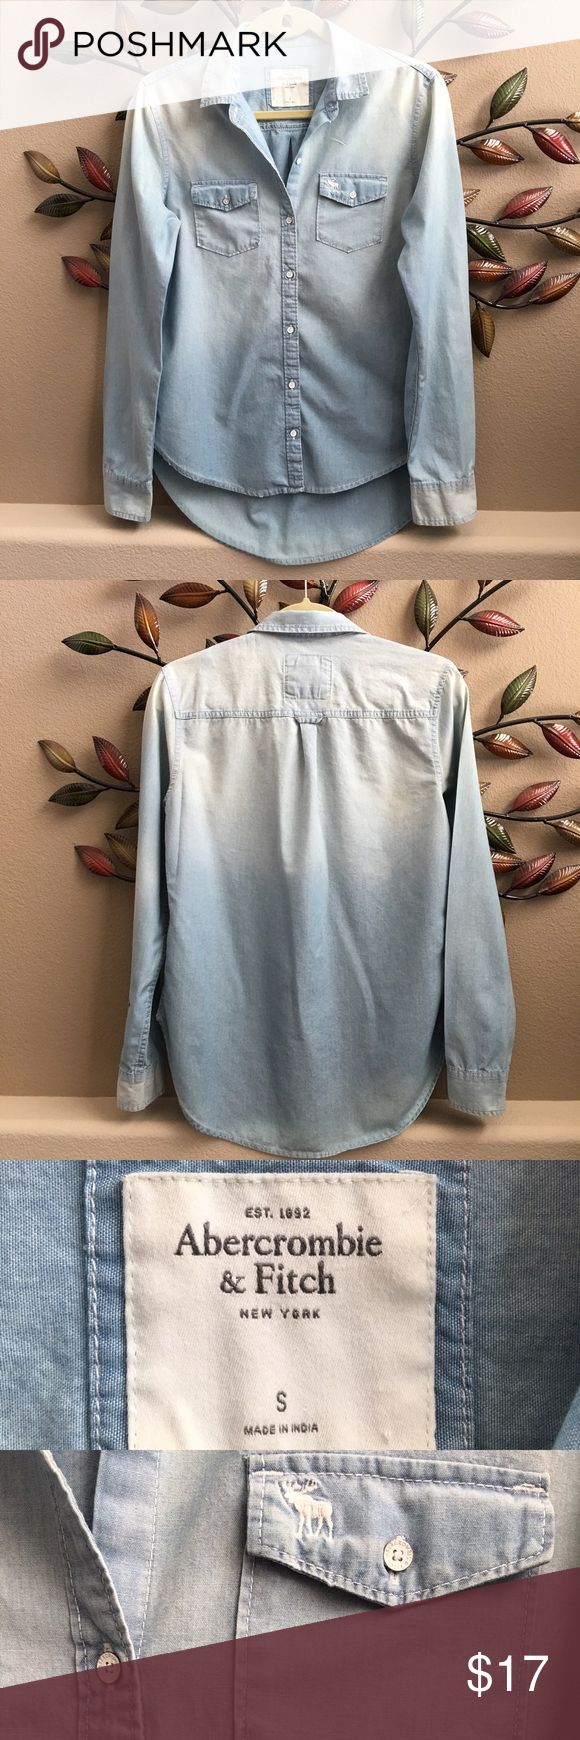 Abercrombie and Fitch Shirt Distressed chambray shirt. Great condition, the distressed look on it is the way it was purchased. Adorable with leggings or just about anything. Great versatile peace. Abercrombie & Fitch Tops Button Down Shirts